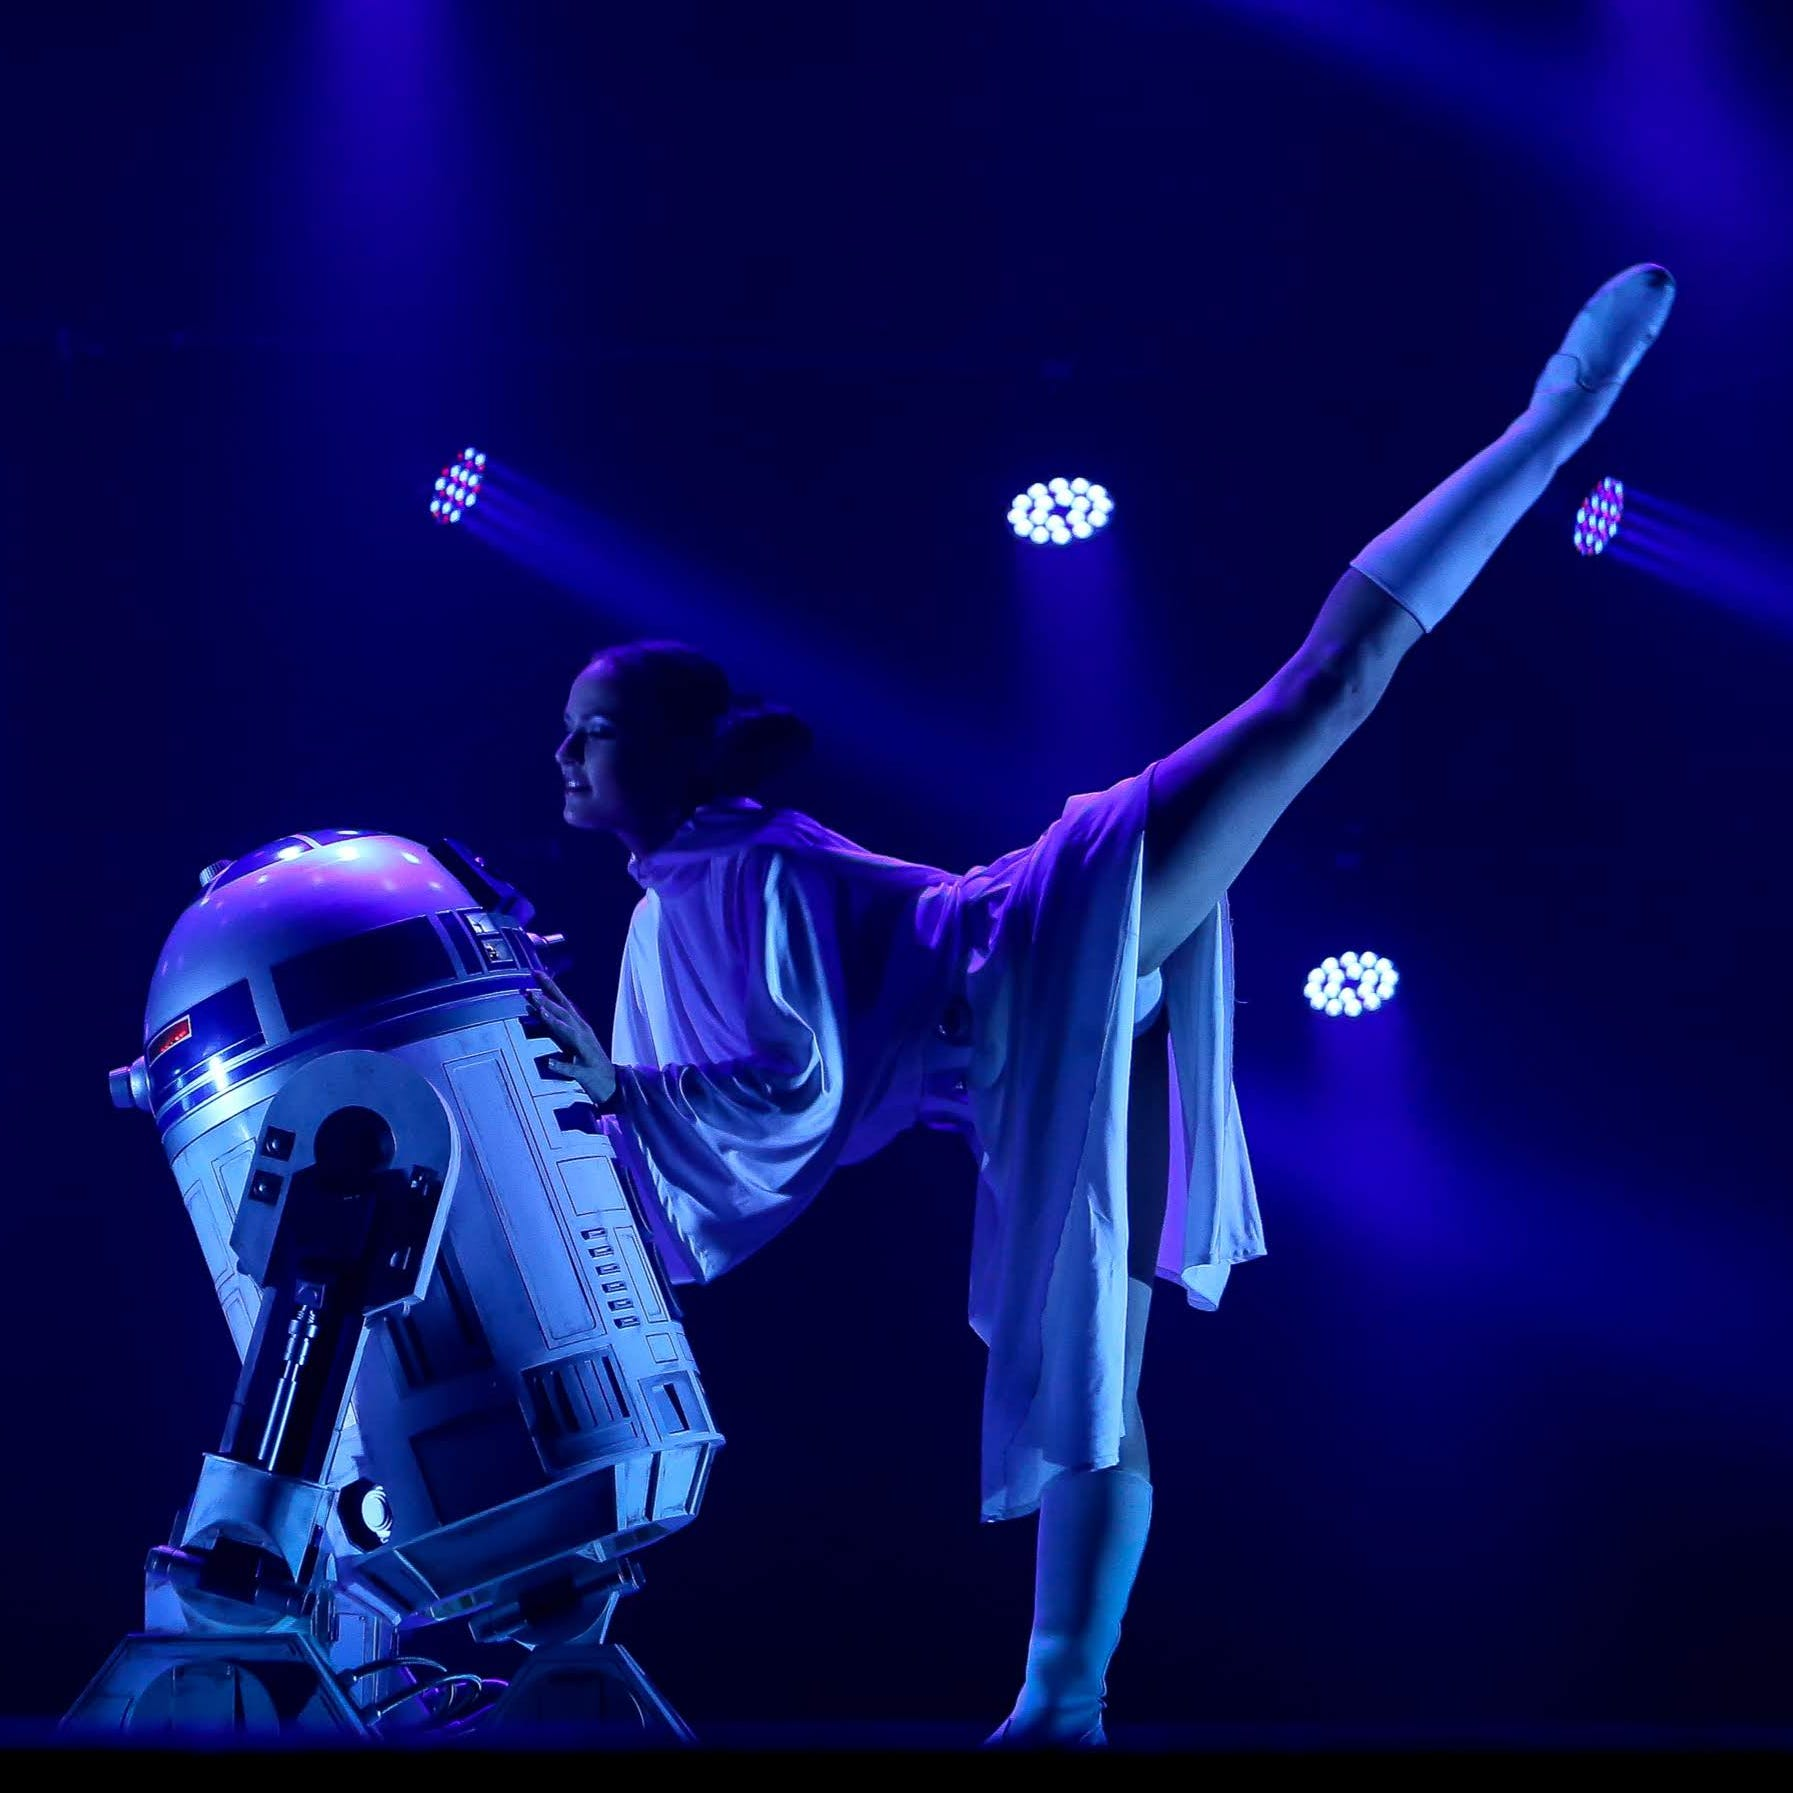 Prepare to ruin your childhood. A 'Star Wars'-themed burlesque show heading to Reno